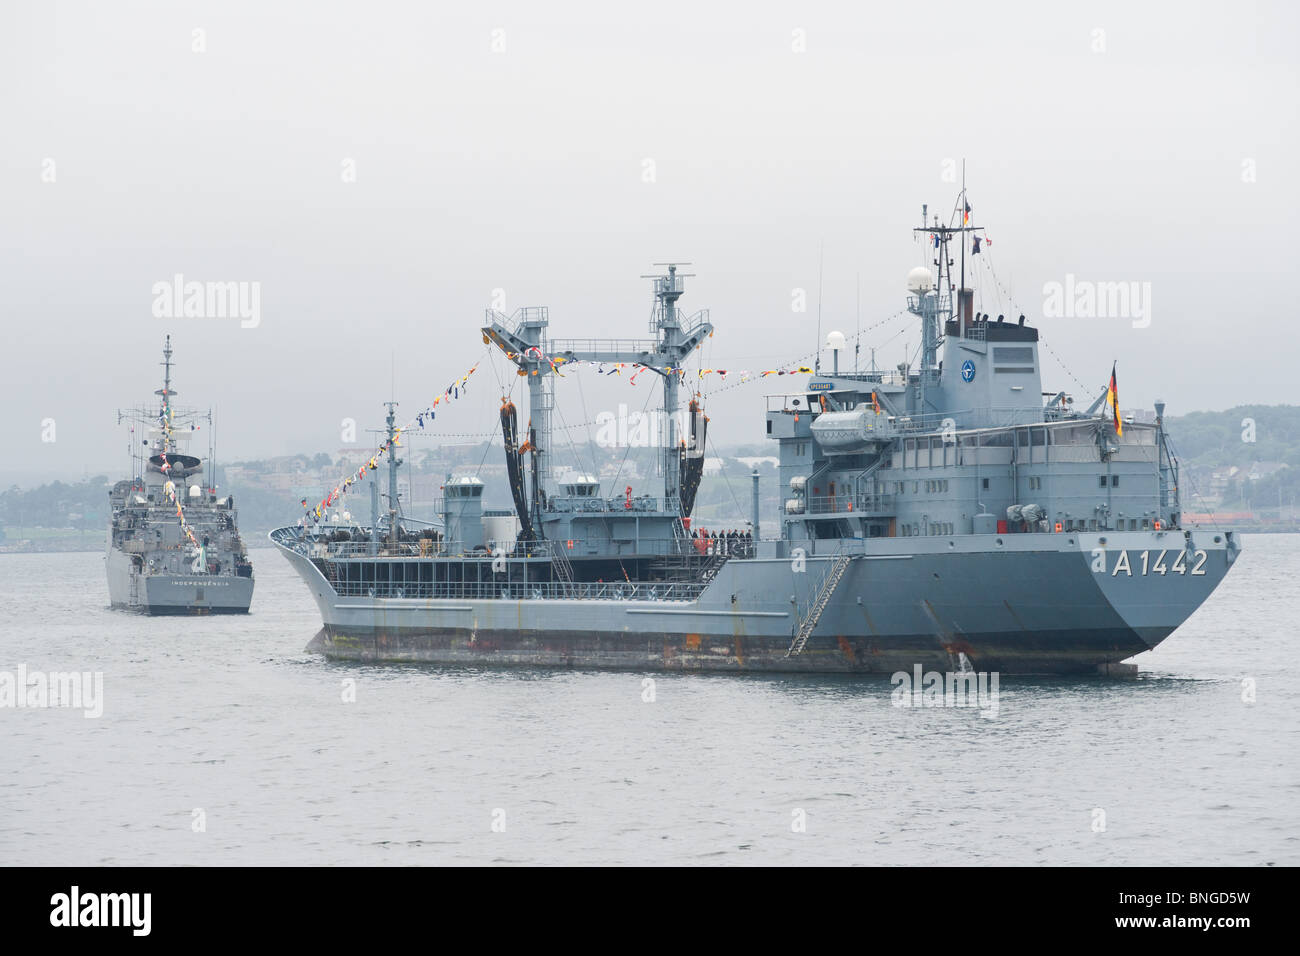 German Navy tanker FGS SPESSART sits at anchor during the 2010 Fleet Review in Halifax, Nova Scotia. - Stock Image